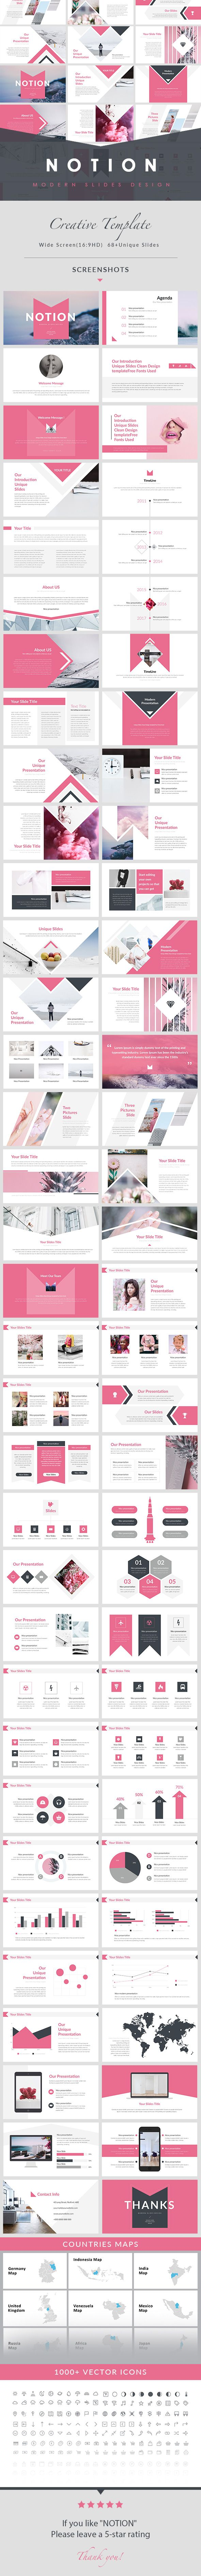 Notion simple creative powerpoint template creative powerpoint notion simple creative powerpoint template toneelgroepblik Choice Image